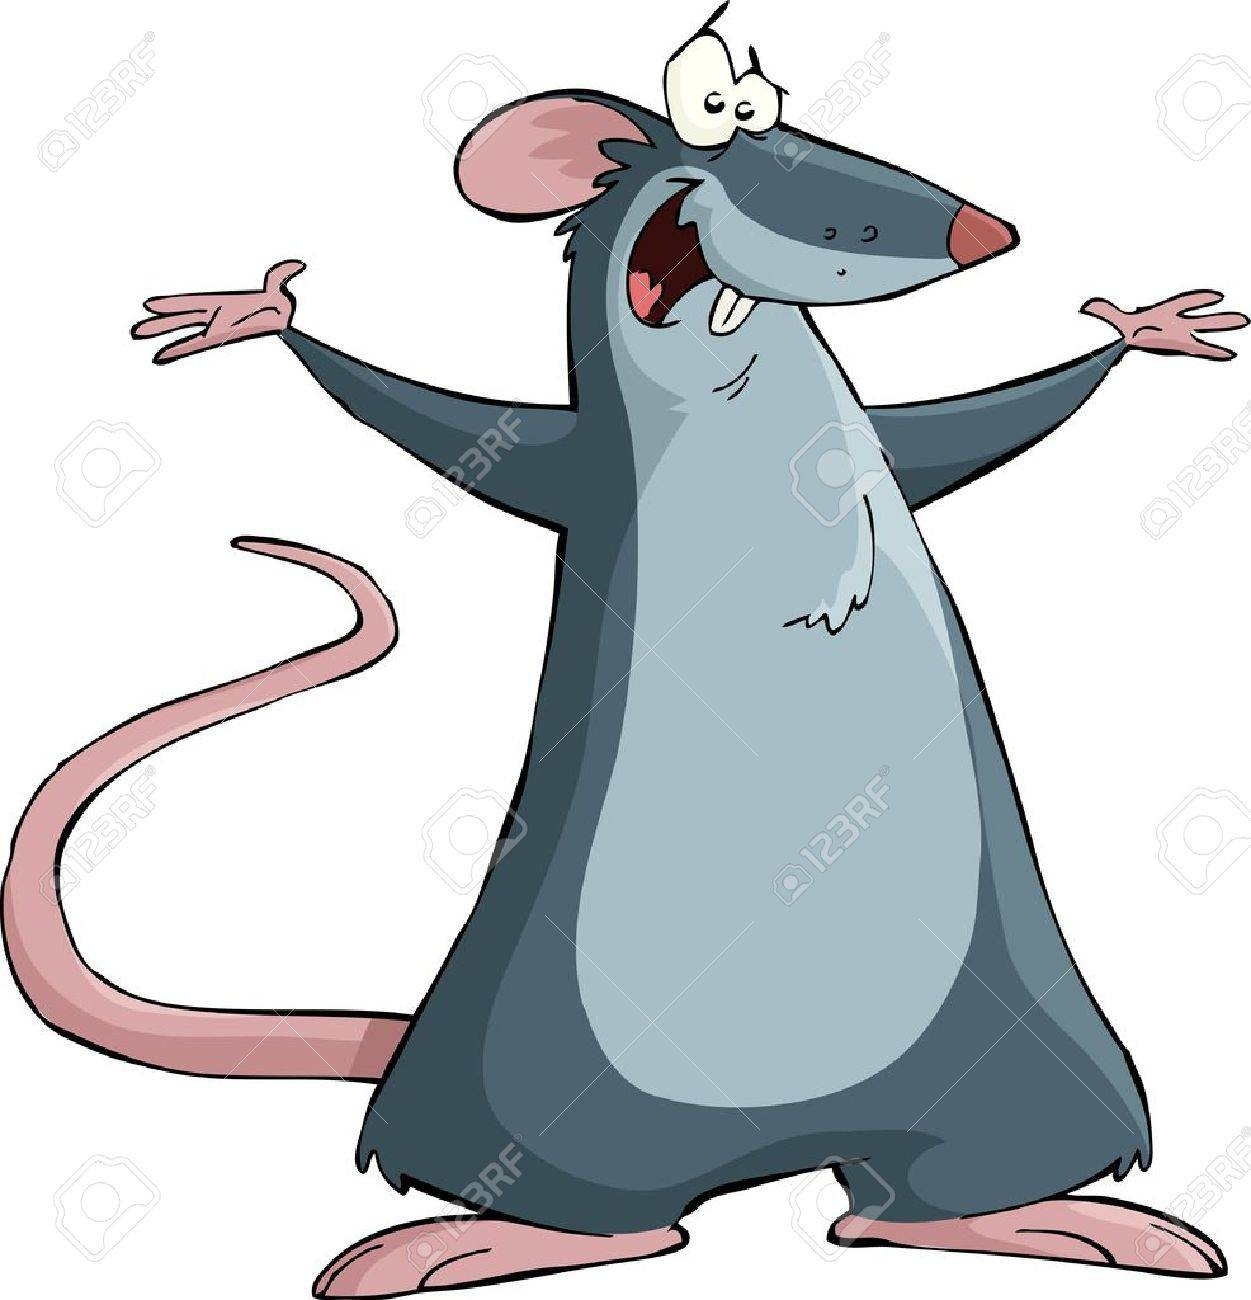 Mouse on a white background, vector illustration Stock Vector - 12490692